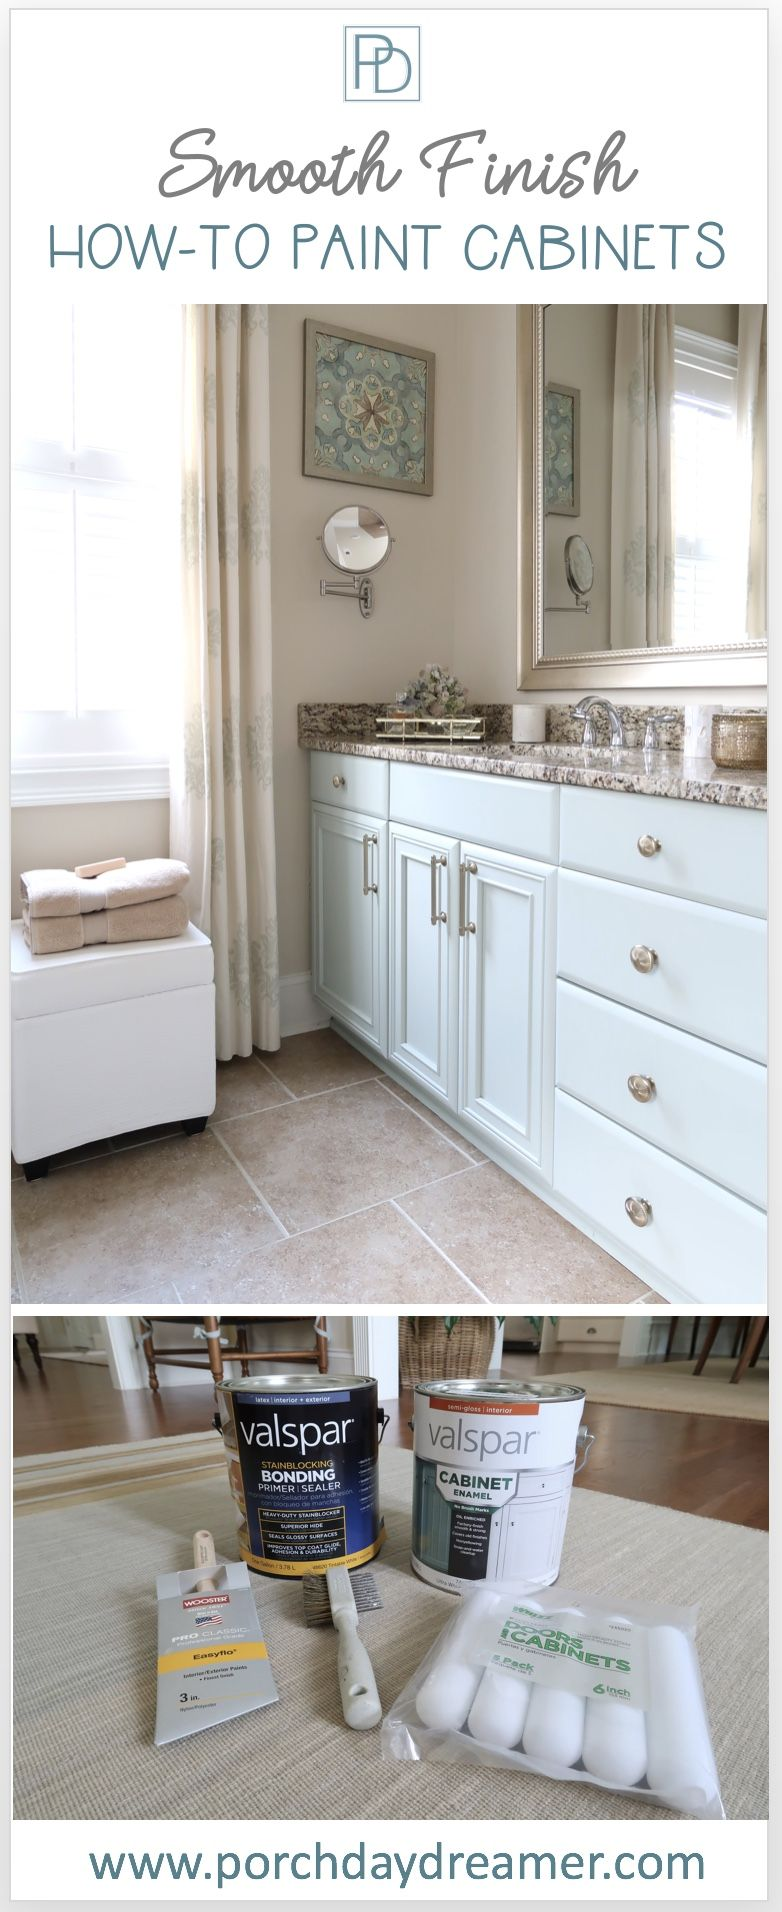 Best How To Paint Cabinets And Get A Smooth Finish Painting 400 x 300